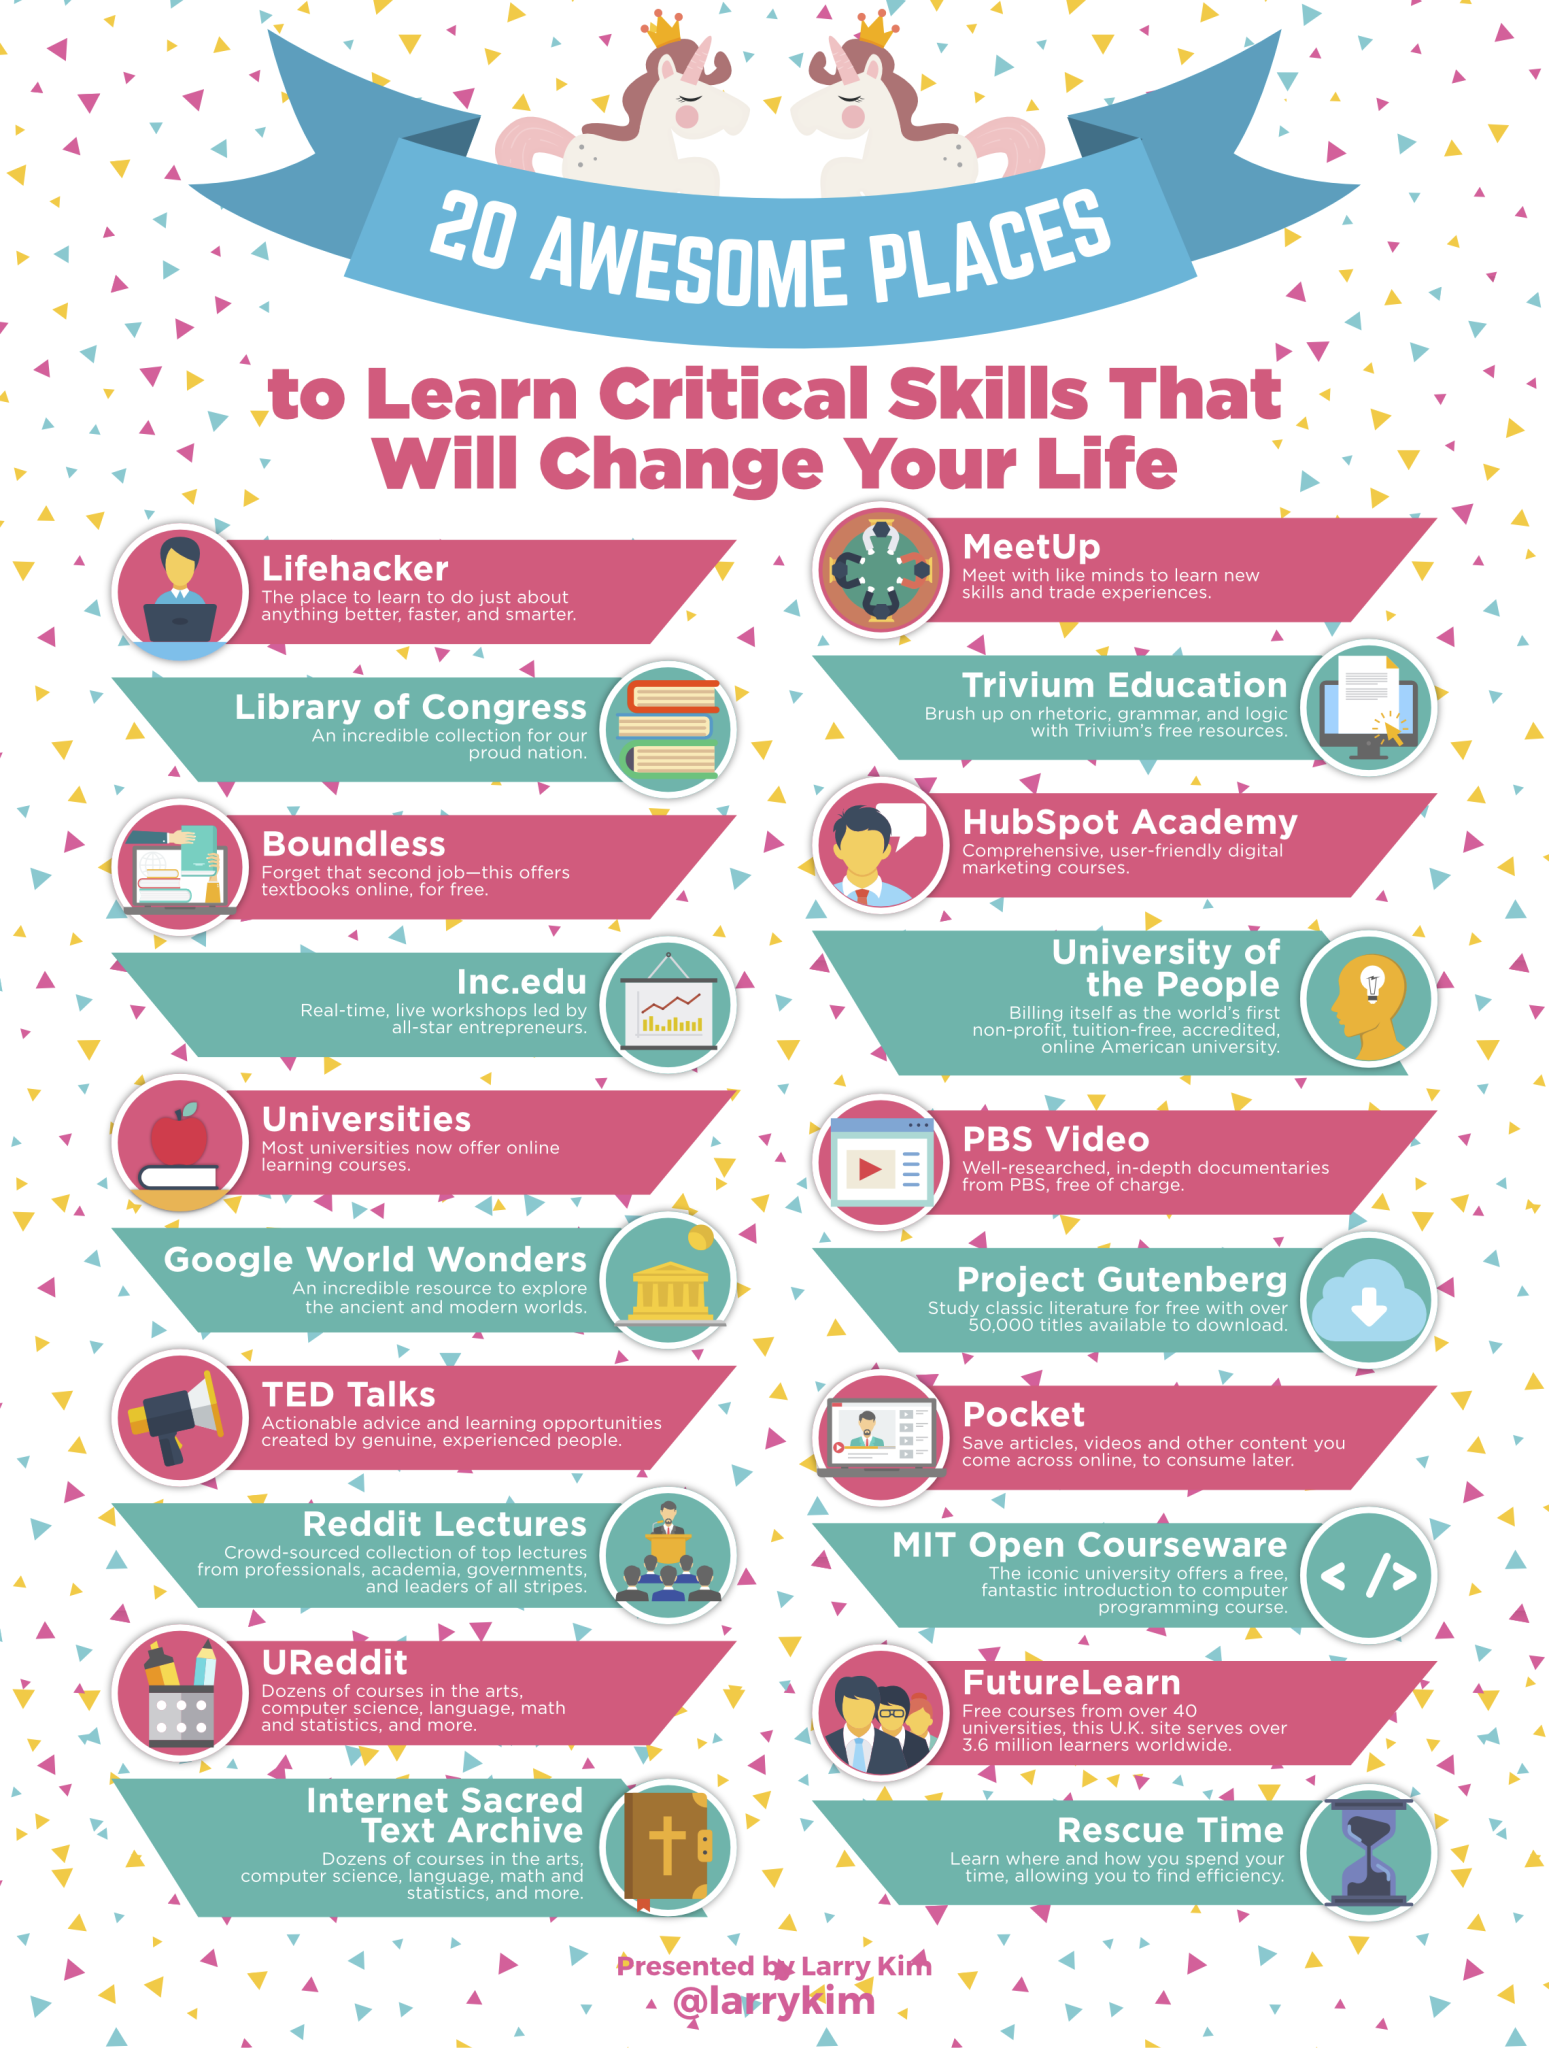 21 Awesome Places to Learn Critical Skills That Will Change